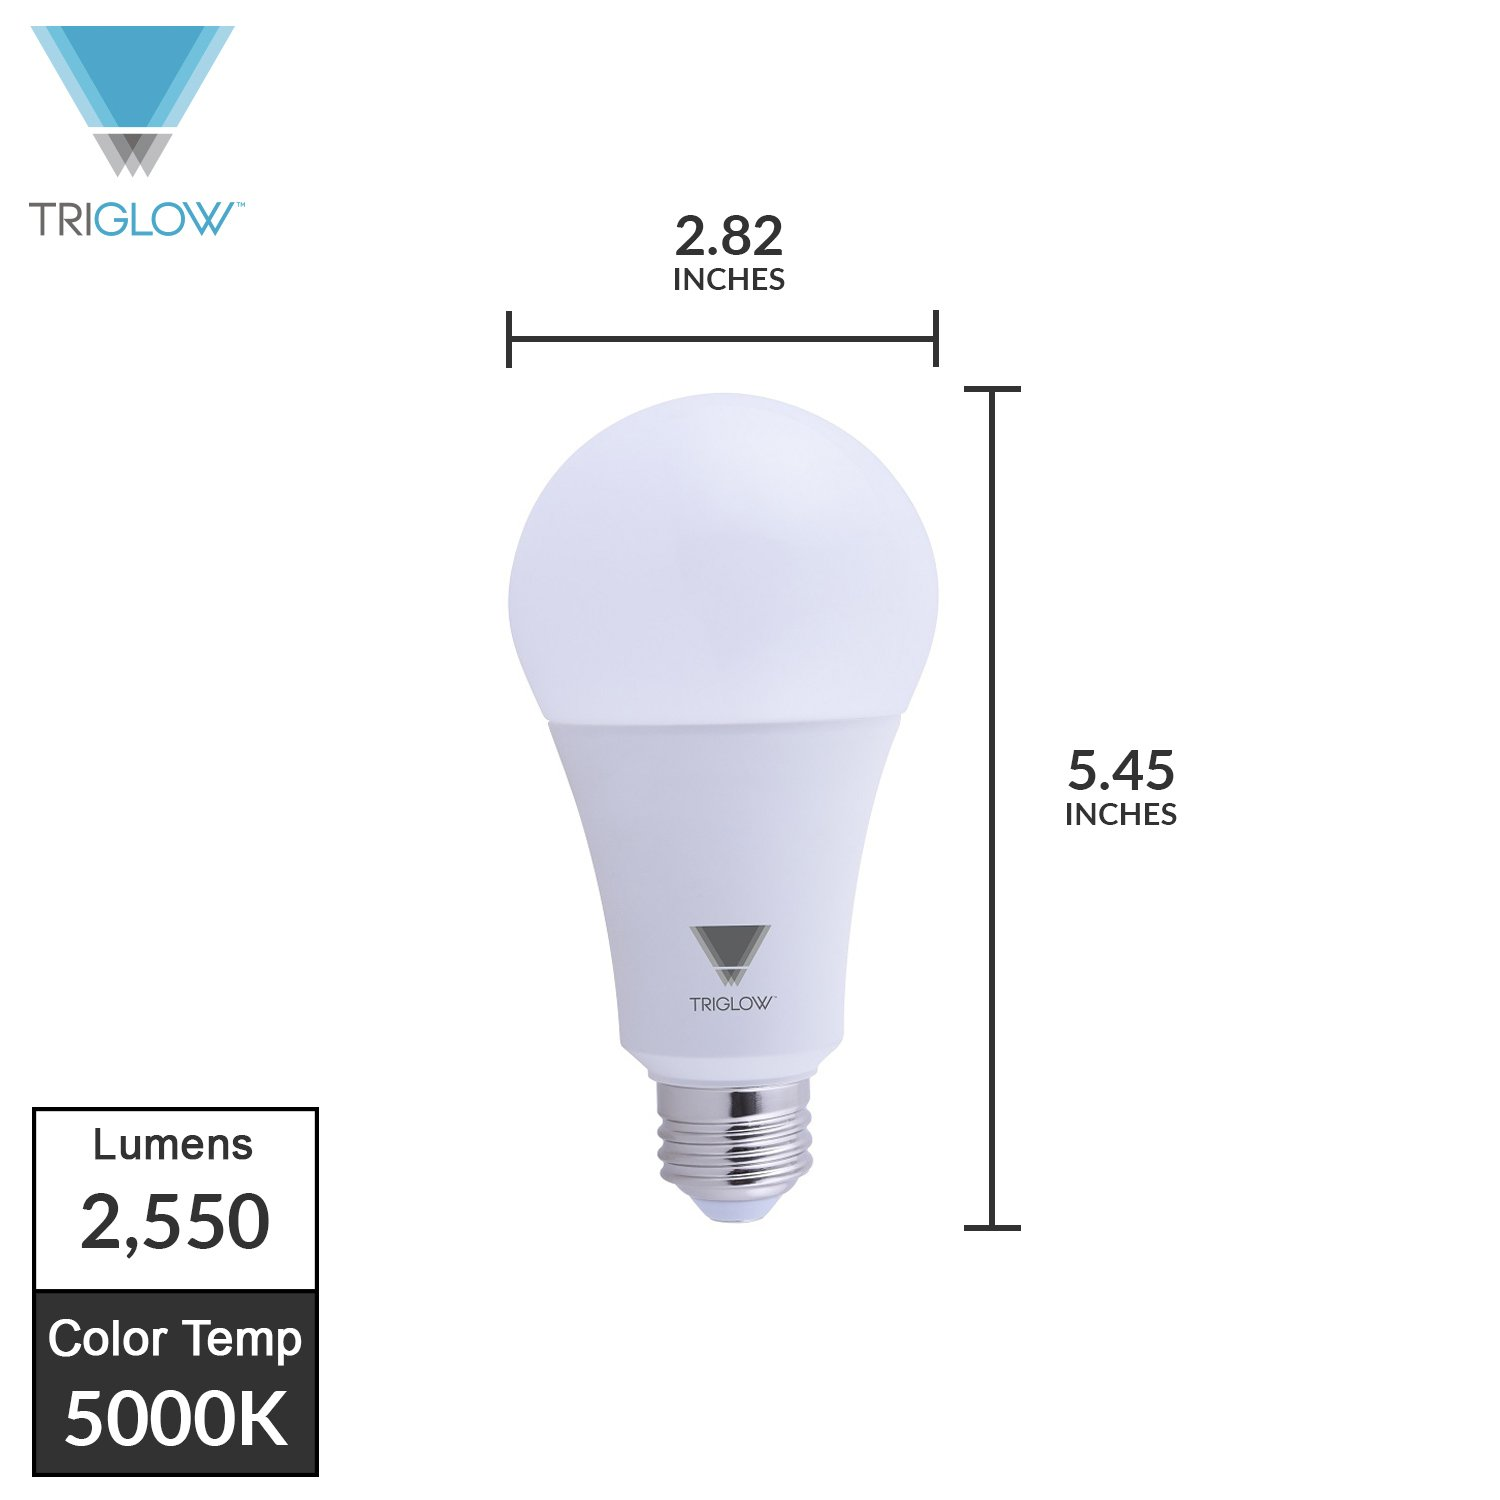 TriGlow T95441-4 (4-Pack) 22-Watt (150/200 Watt Equivalent) LED A21 Bulb, DIMMABLE 3000K (Soft White Color) 2550 Lumens, UL Listed - - Amazon.com